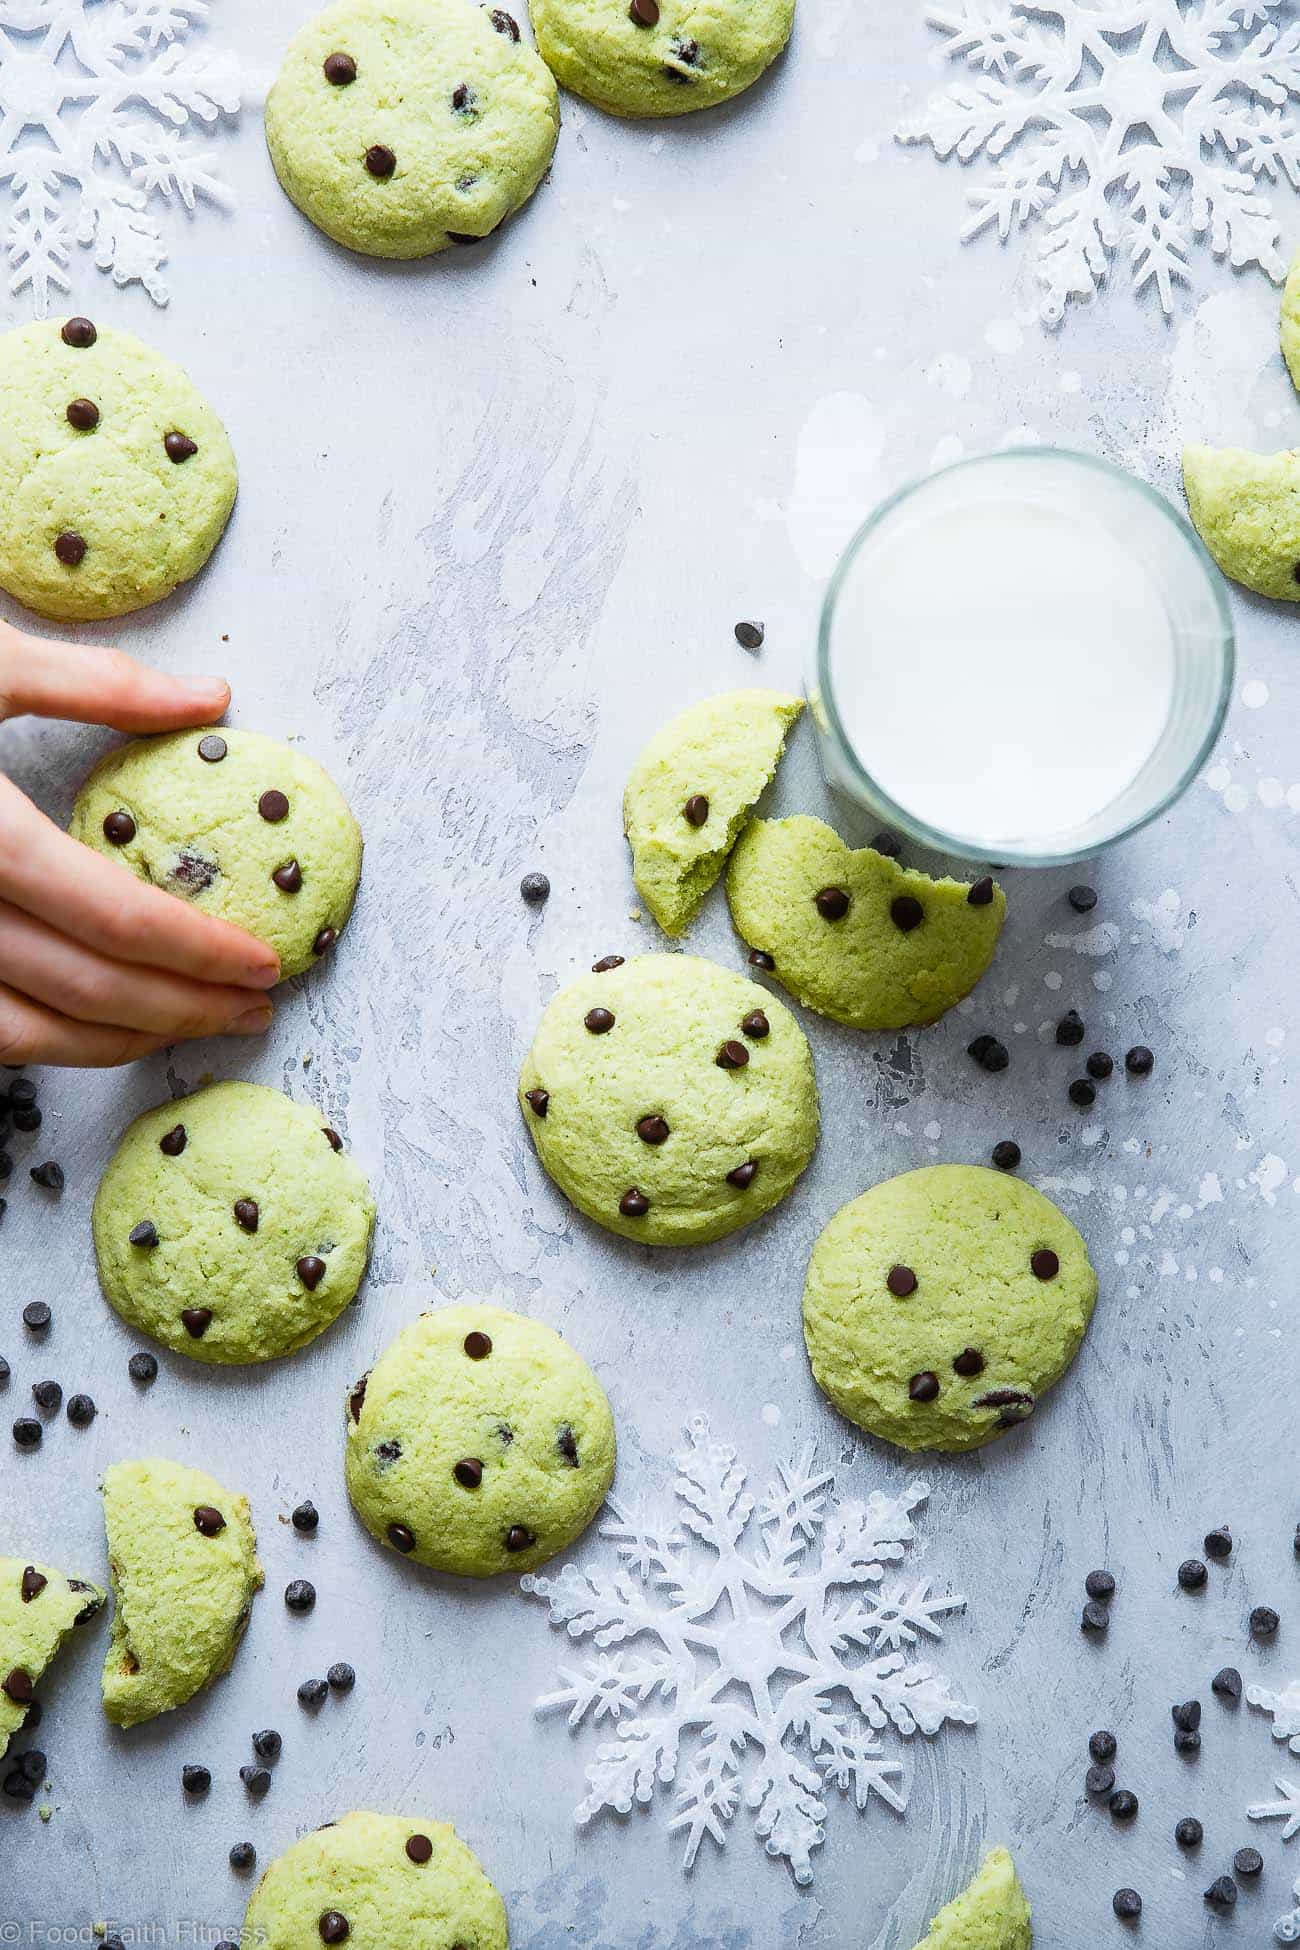 Gluten Free Mint Chocolate Chip Sugar Cookies - An easy soft sugar cookie recipe that is sugar free, naturally colored and only 90 calories and 4 SmartPoints! Perfect for Christmas!   Foodfaithfitness.com   @FoodFaithFit